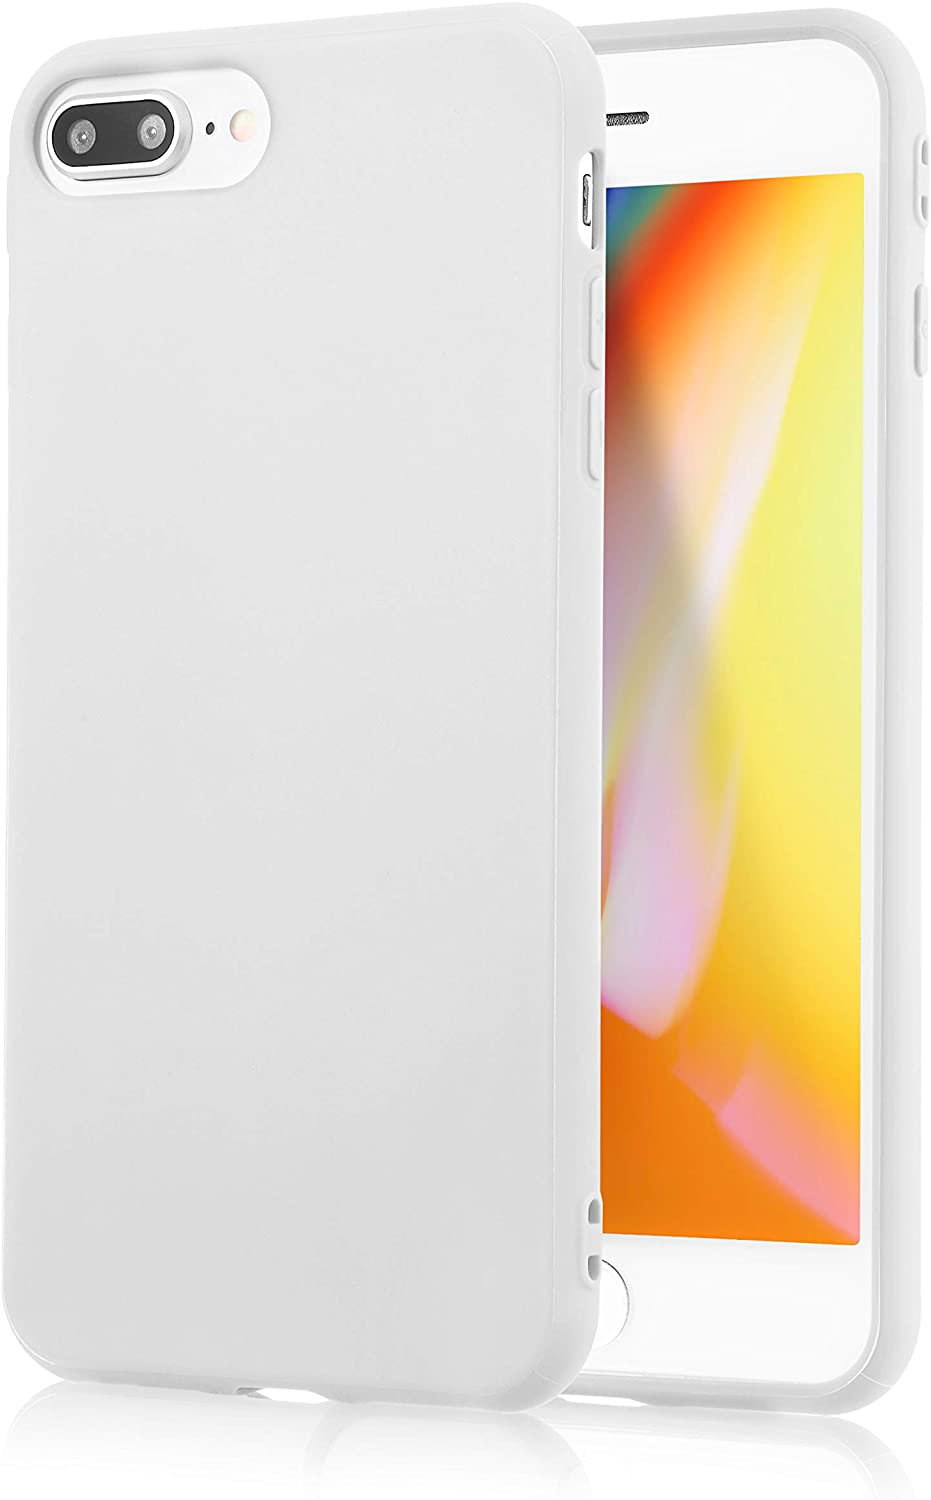 iPhone 7 Plus White Case/iPhone 8 Plus White Case, technext020 Shockproof Ultra Slim Fit Silicone TPU Soft Gel Rubber Cover Shock Resistance Protective Back Bumper for iPhone 7 Plus/iPhone 8 Plus